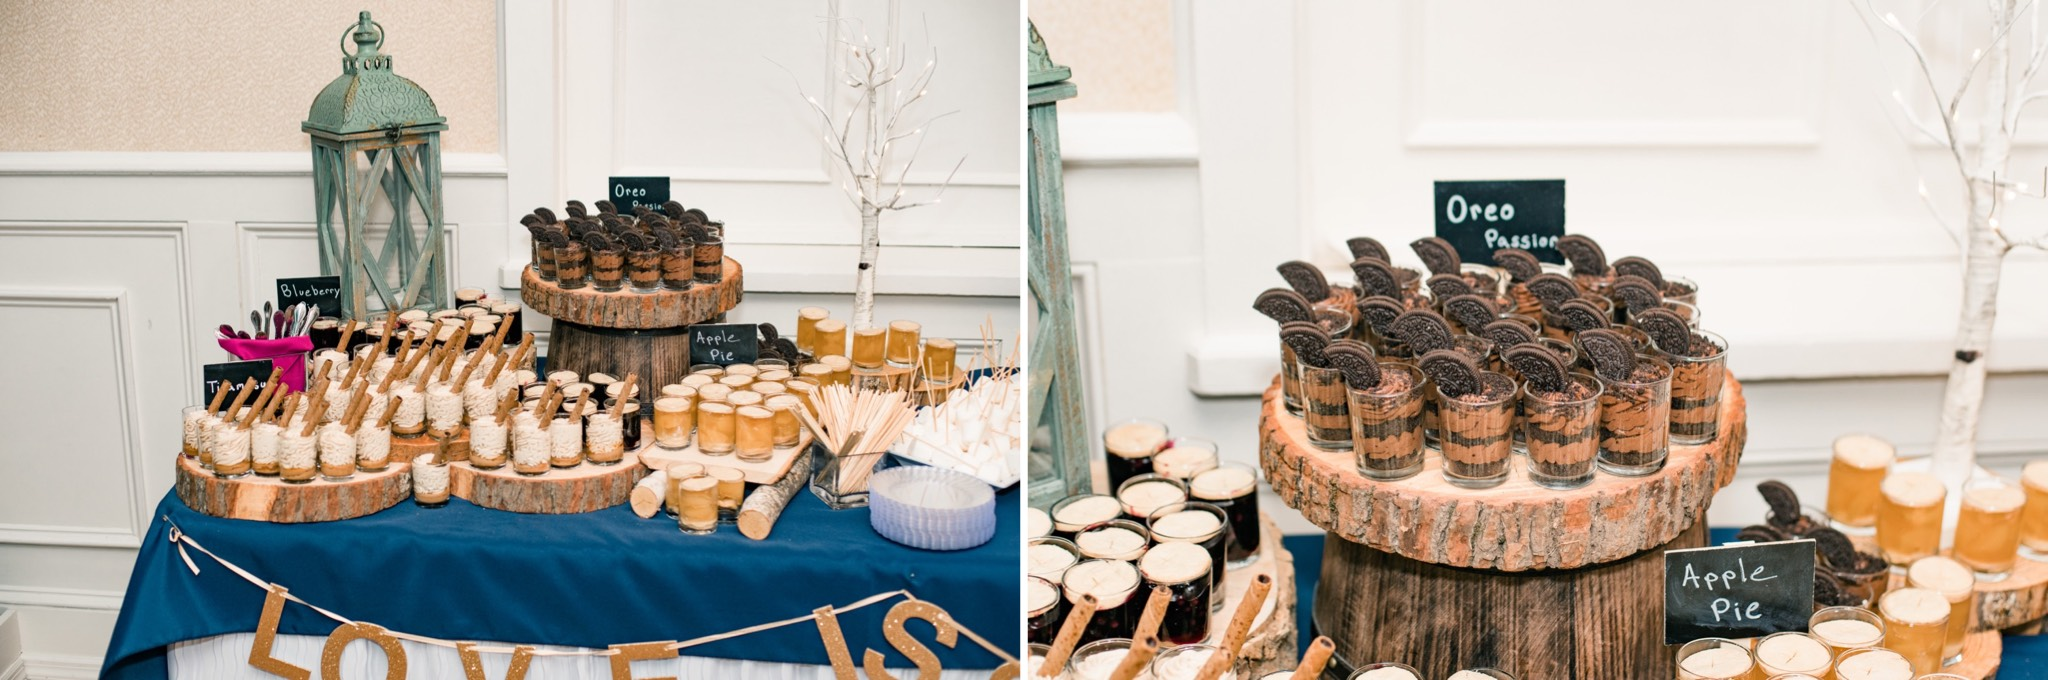 Dessert Table Staten Island Wedding